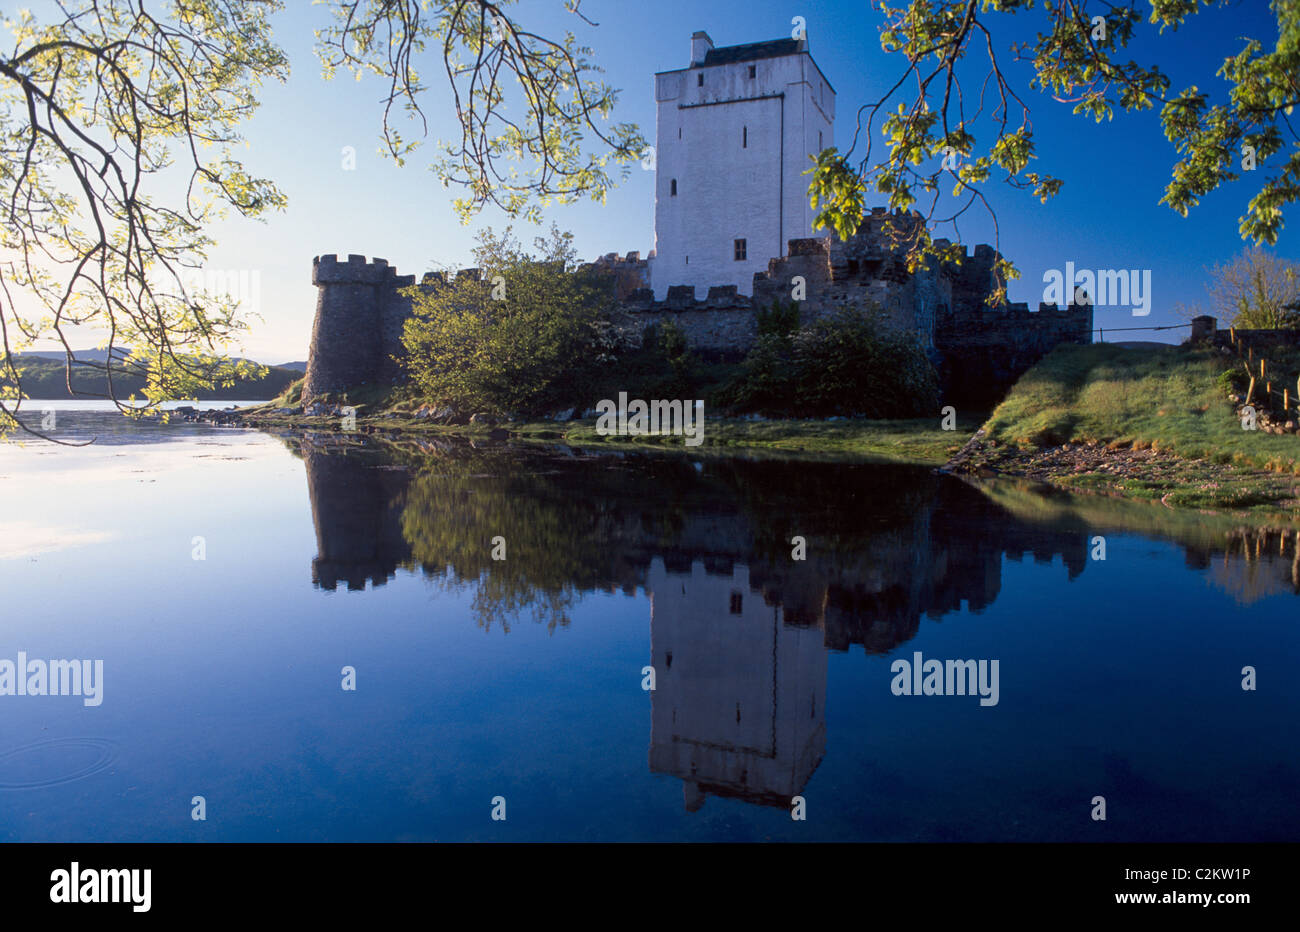 Reflection of Doe Castle in Sheephaven Bay, Creeslough, County Donegal, Ireland. - Stock Image